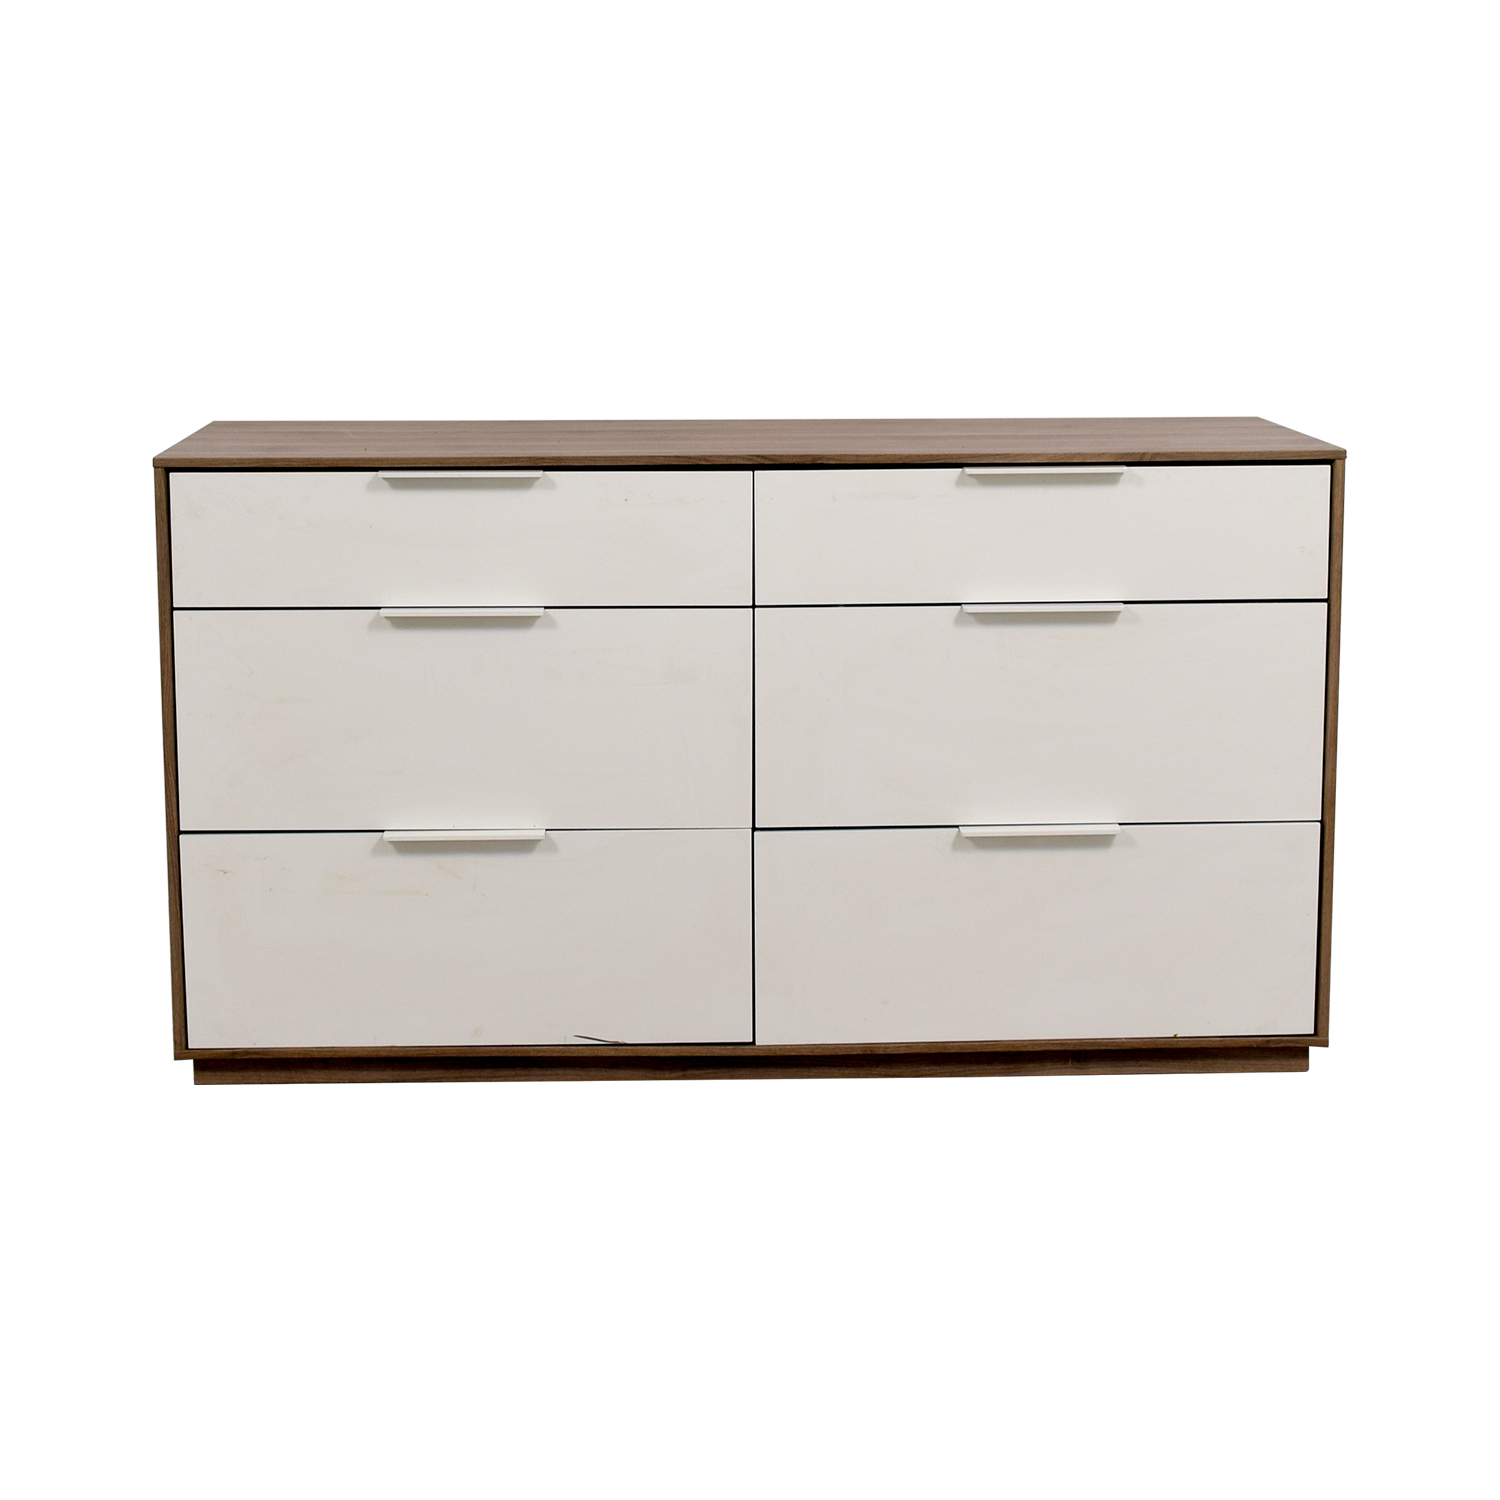 IKEA IKEA White Six-Drawer Dresser second hand